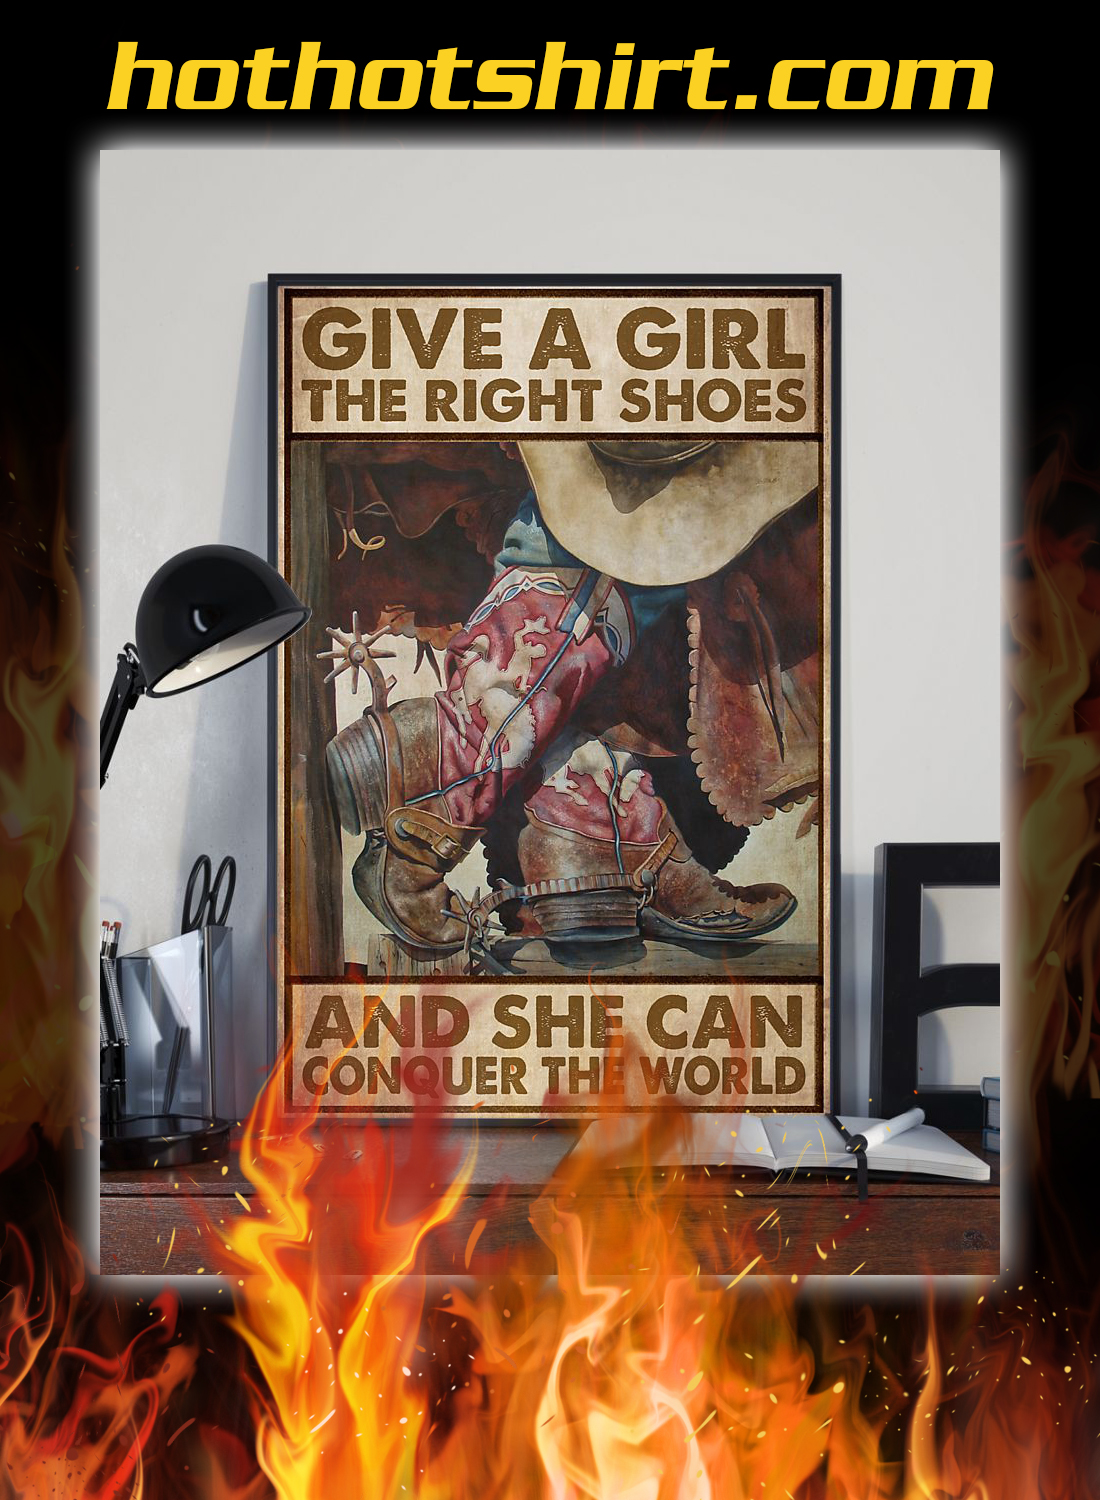 Cowgirl Give a girl the right shoes and she can conquer the world poster 2